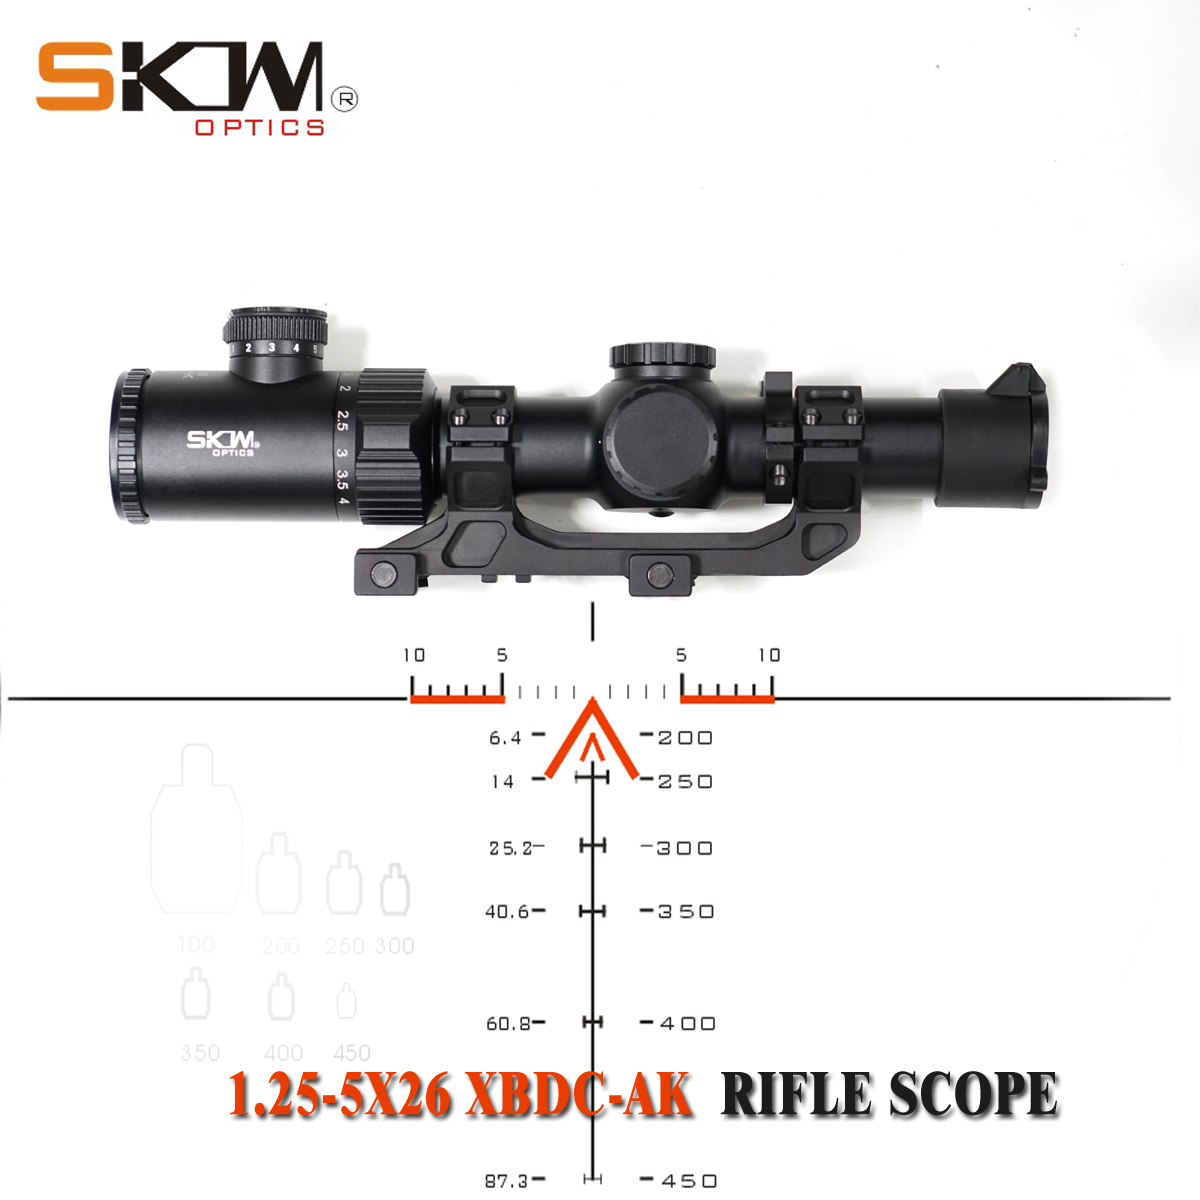 SKWoptics 1.25-5x26A Tactical Riflescopes Hunting For AK AR, M4 Kalashnikov Sight Rifle Scope BDC Reticle With One Piece Mount